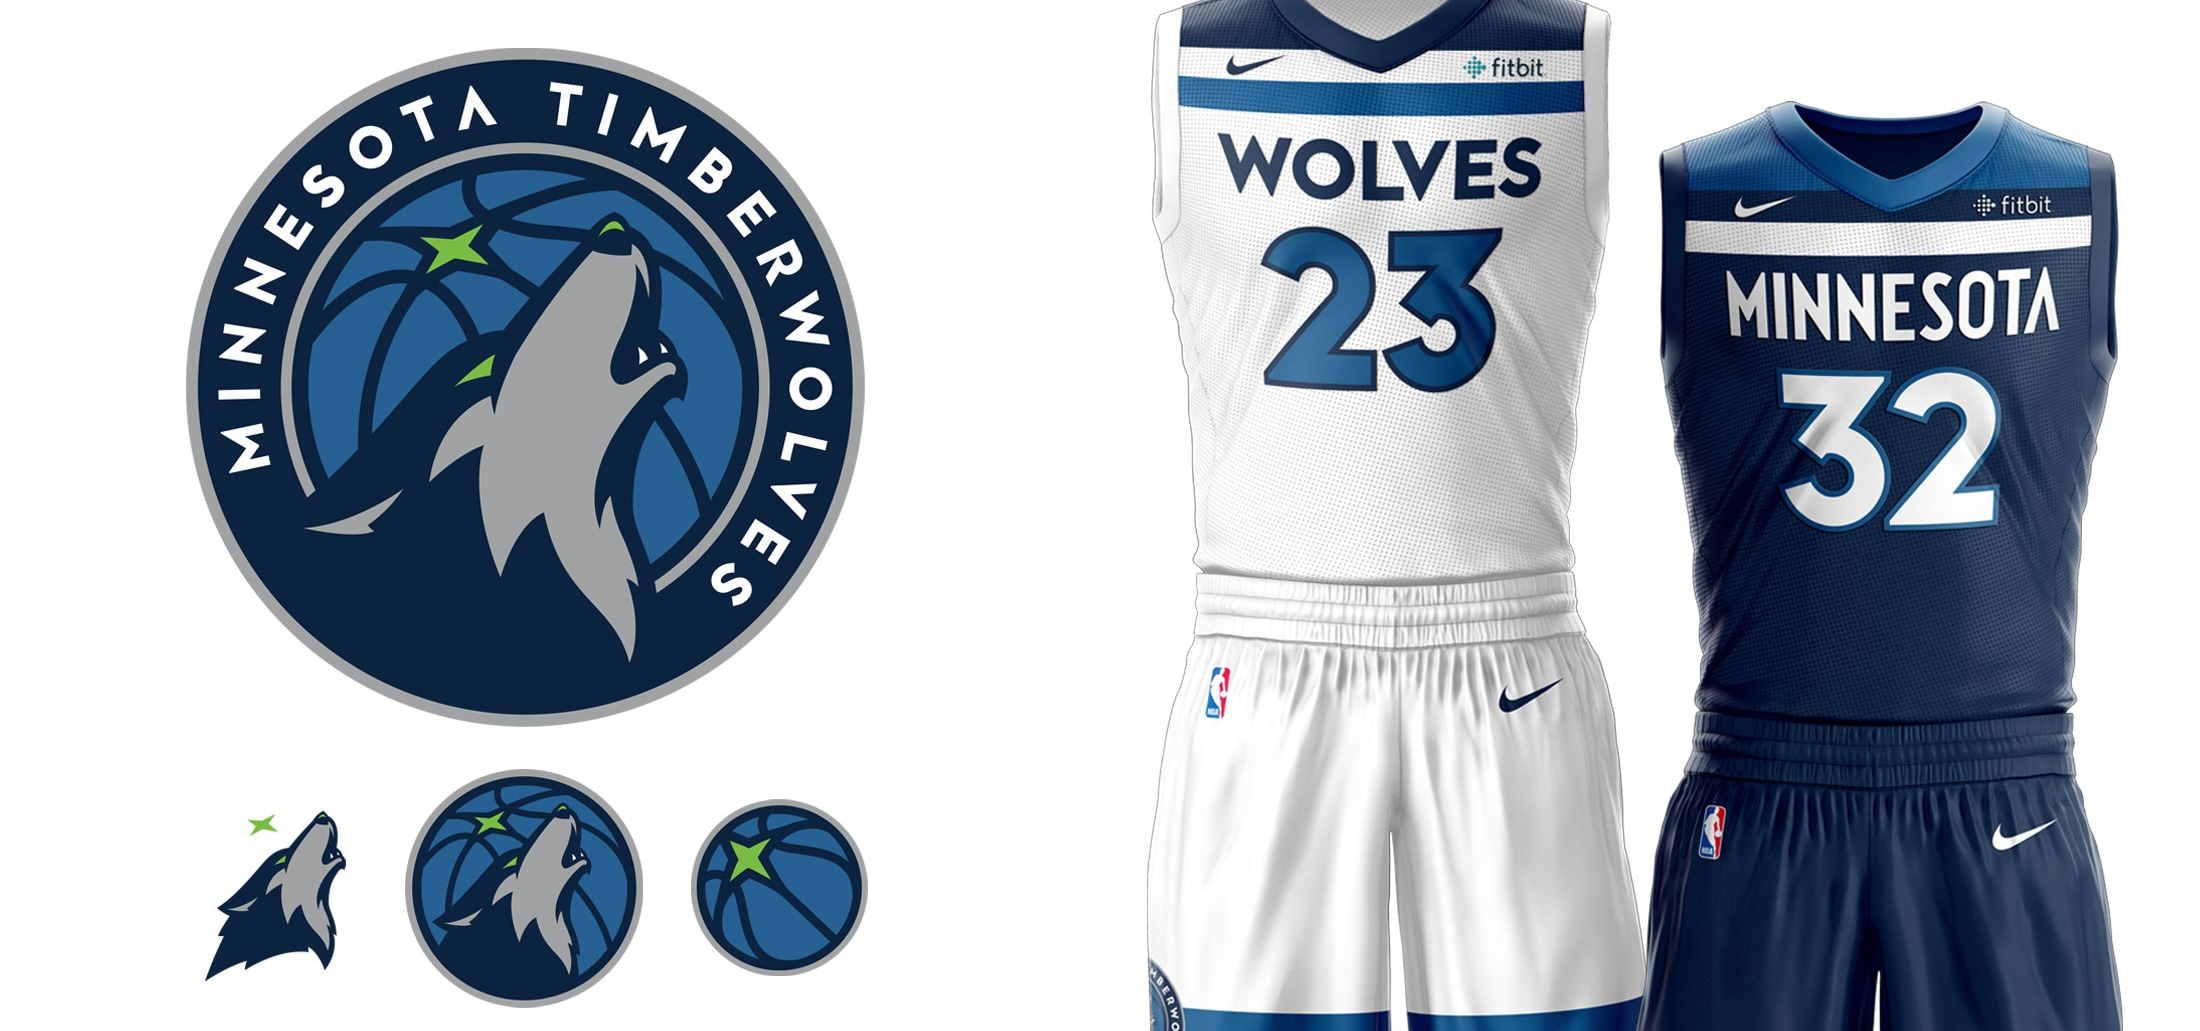 508d841a2 A Look At The History Of Timberwolves Jerseys